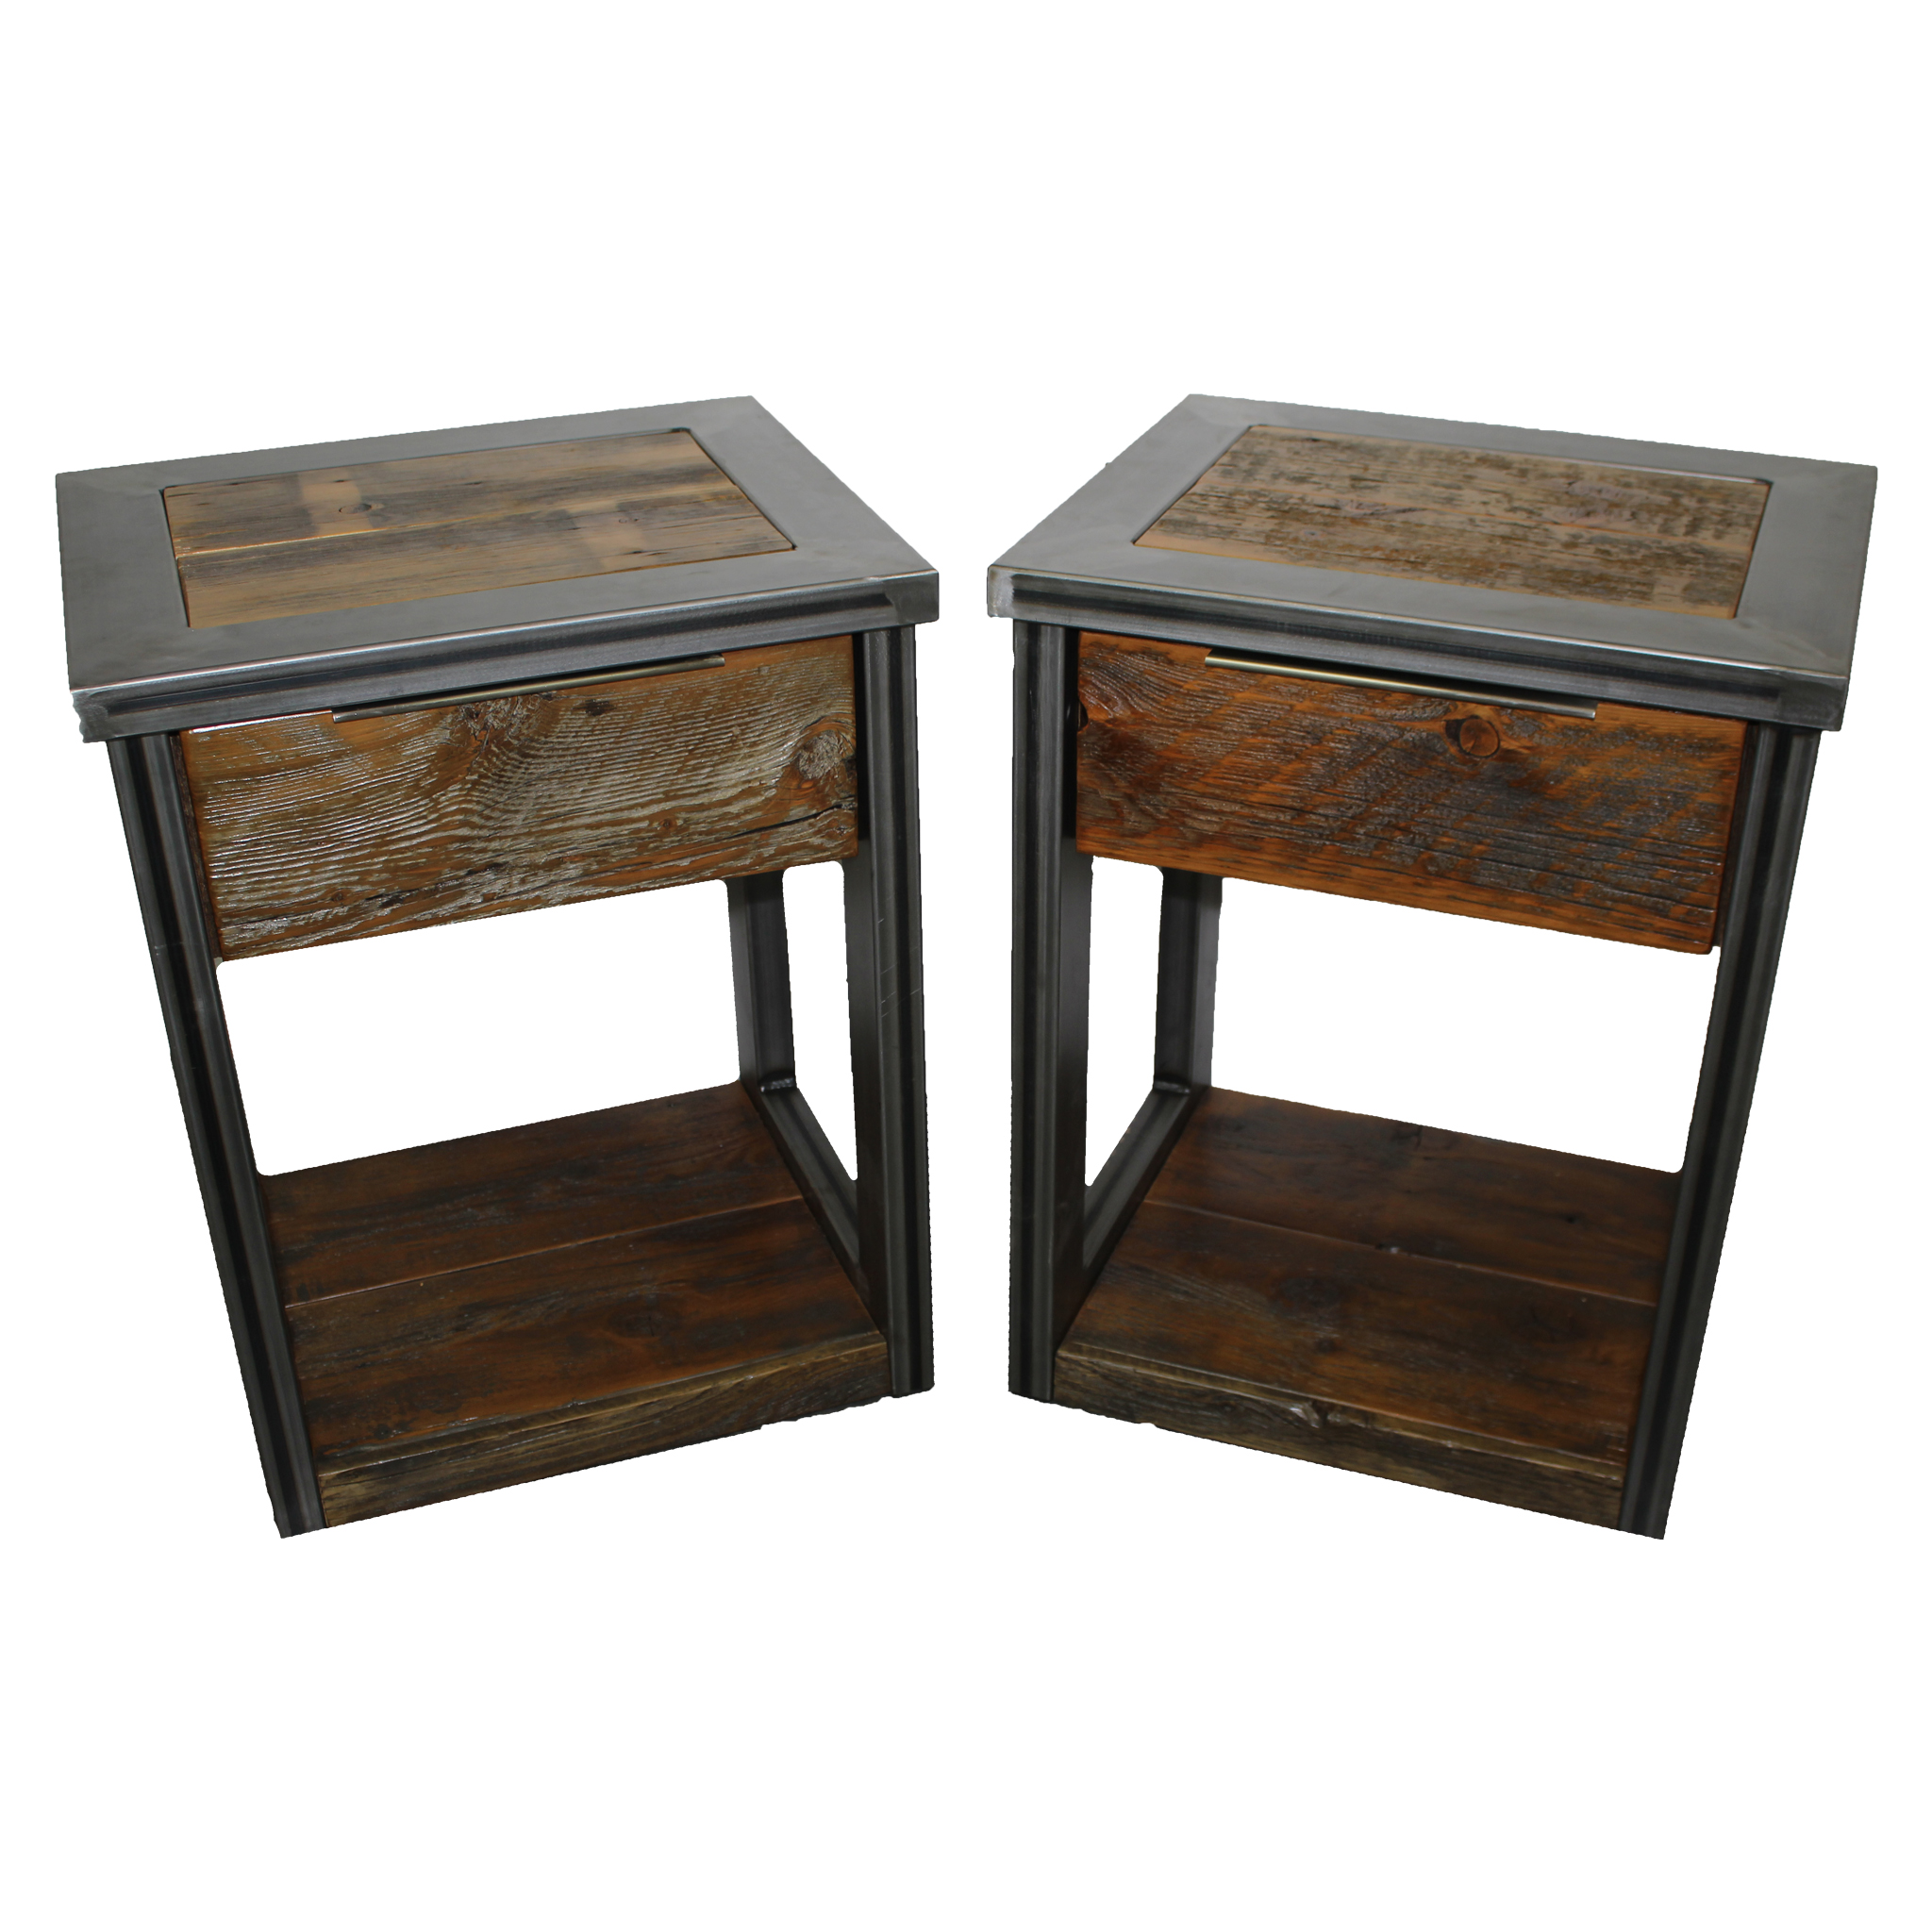 Modern Industrial Nightstand With Reclaimed Wood